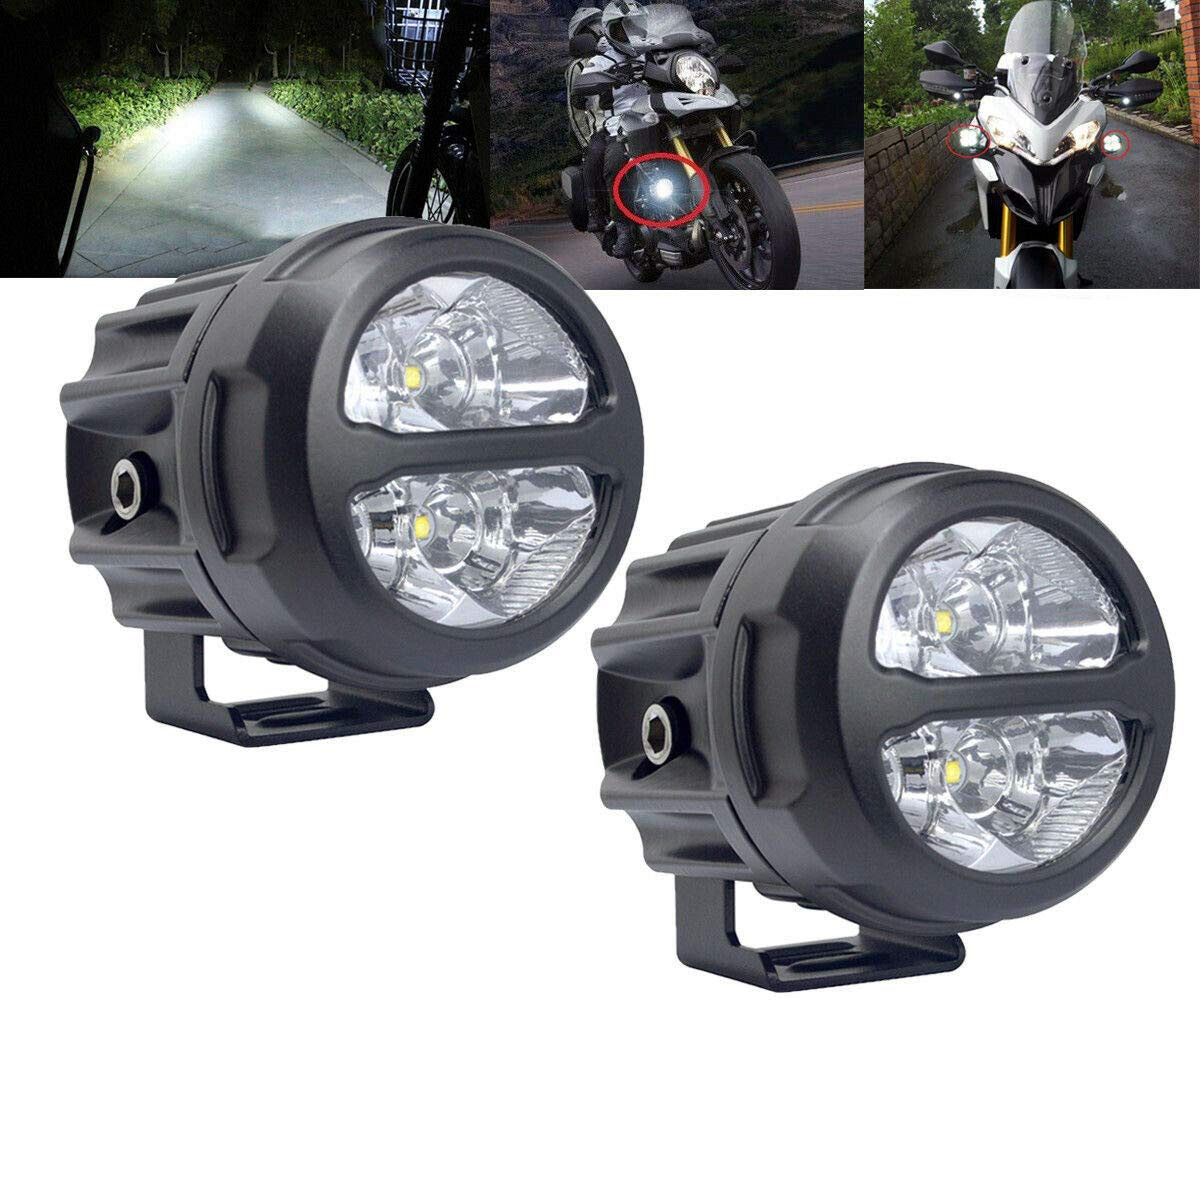 lightronic 2Pcs 3inch Round Led Off Road Lights 20W LED Driving Work Spot Lamp for Motorcycle 4WD Car